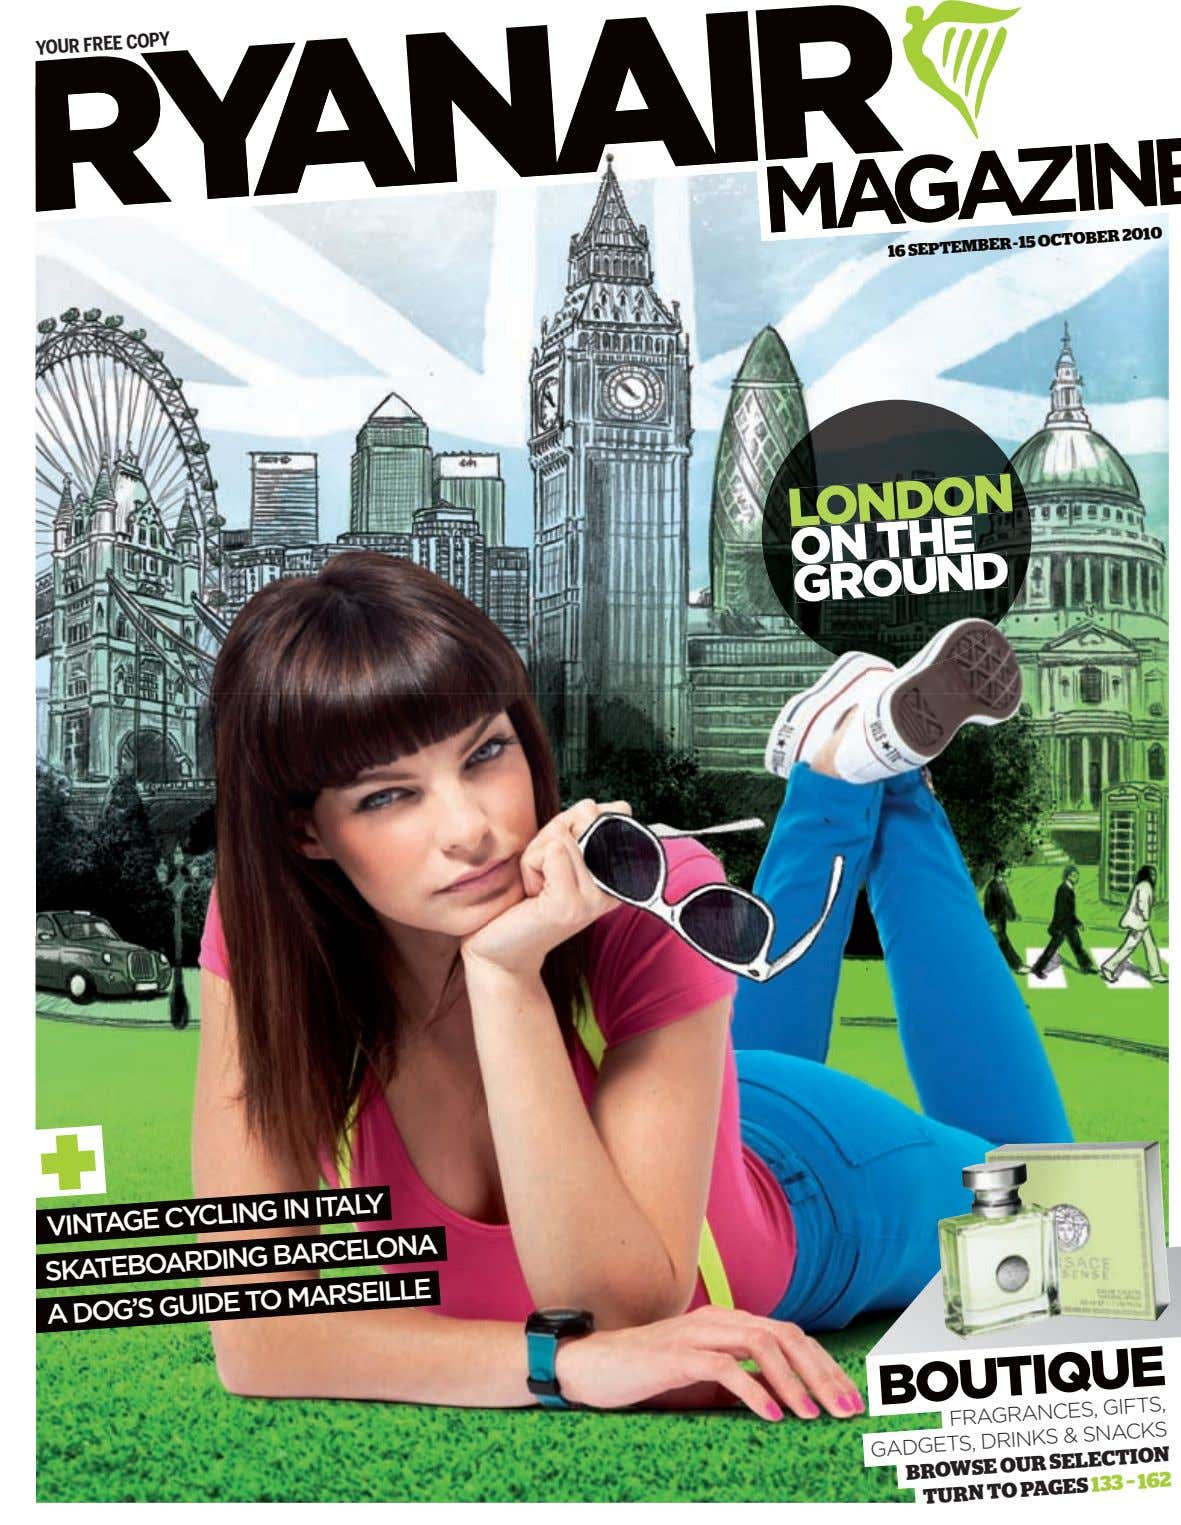 YOUR FREE COPY 1616 SEPTEMBERSEPTEMBER--1515 OCTOBEROCTOBER 20102010 LONDON ON THE GROUND VINTAGE CYCLING IN ITALY